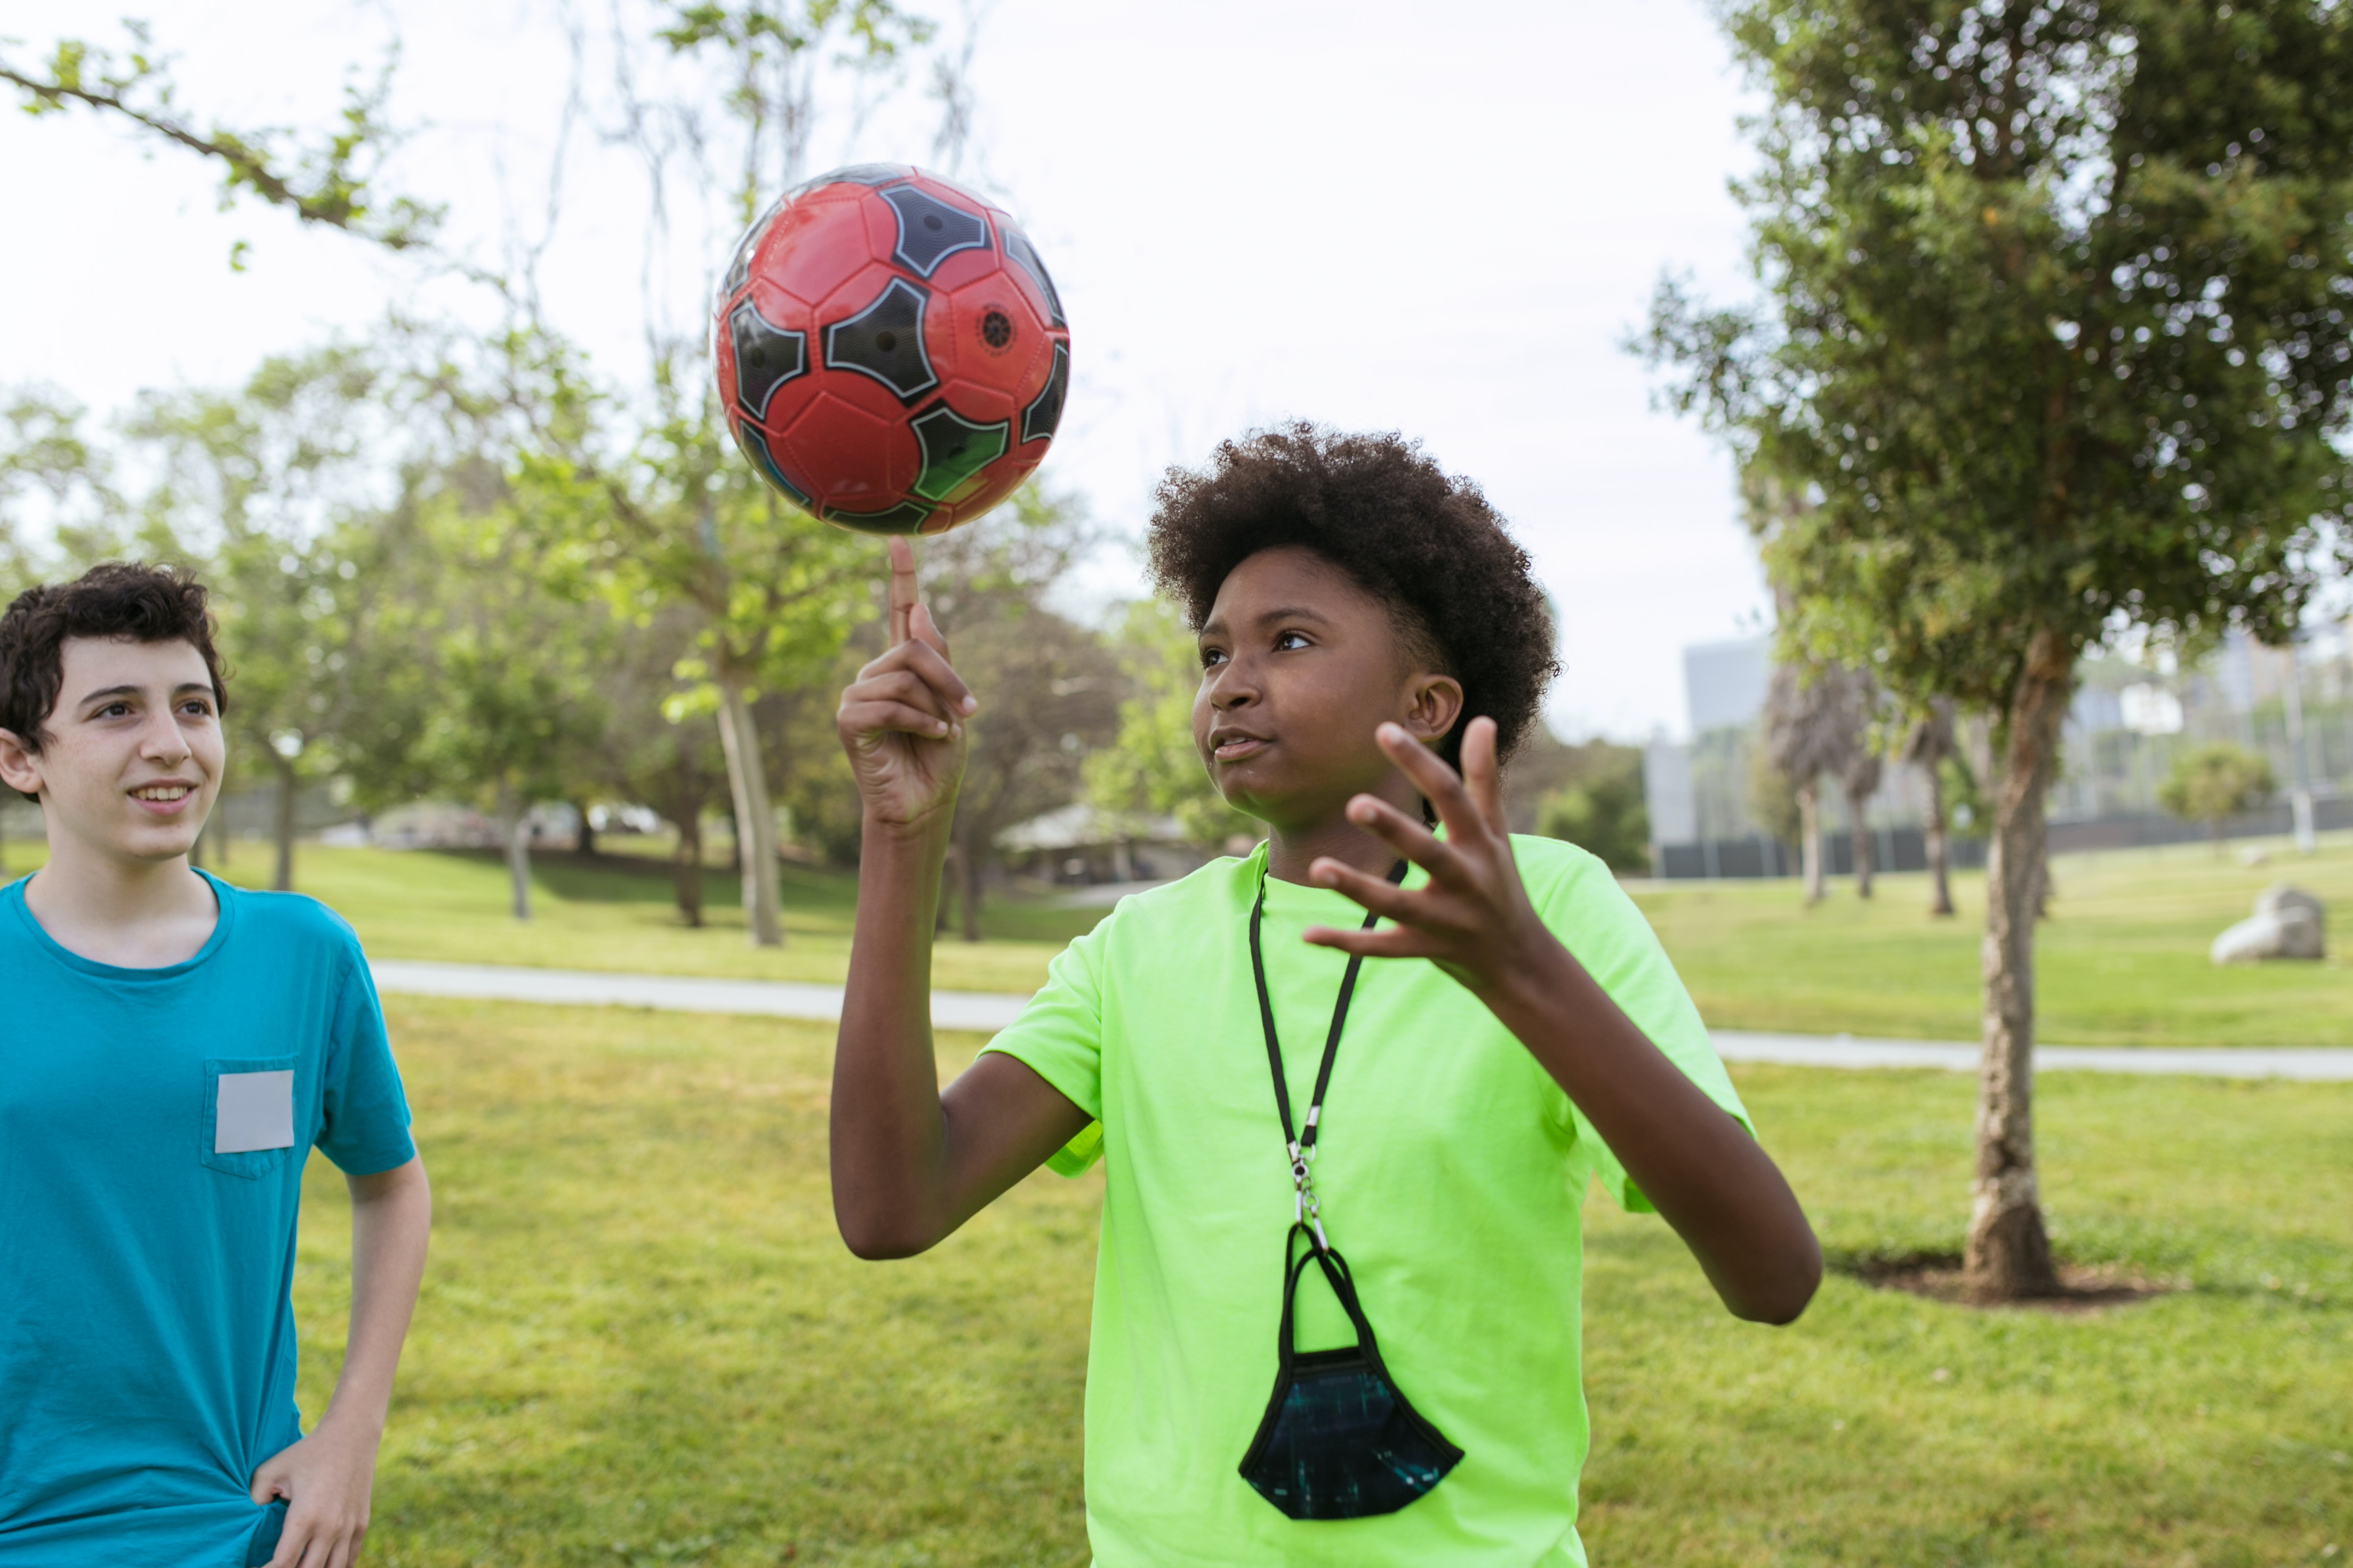 Supporting children and young people to enjoy healthy lifestyles